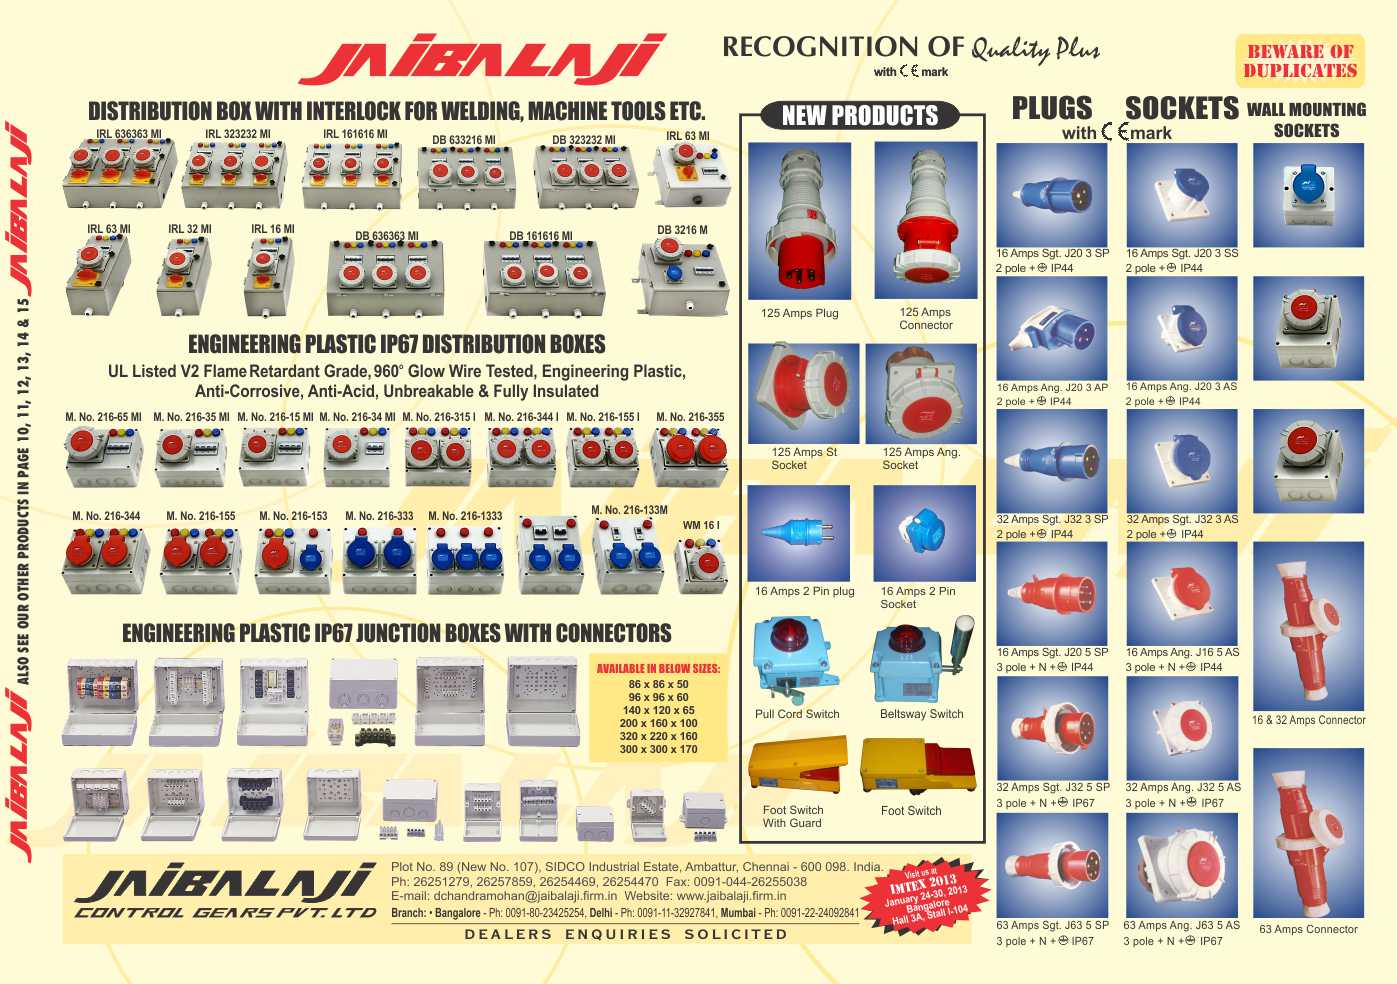 Jaibalaji Control Gears Pvt Ltd, manufacturer of Distribution Box with Interlock, Engineering Plastic Junction Boxes with Connector, Engineering Plastic Distribution Boxes, Belt Sway Switches, Pull Cord Switches, Foot Switches, Sockets, Pin Plugs, Amps Connectors, Amps Plugs, Amps Sockets, Wall Mounting Sockets, Limit Switches, Mini Limit Switches, Miniature Snap Action Switches, Led Module Indicating Lights, Crane Bus Bar Indicators, Tower Lights, Proximity Switches, Inductive Proximity Switches, Capacitive Proximity Switches, Photo Electric Sensors, Timers, Ammeters, Voltmeters, Analog Timers, Digital Timers, Timer Counters, Push Buttons, Pilot Lights, Cam Operated Rotary Switches ,Electronic Timers, Pus Button, Led Signal Tower Lights, Engineering Plastic Plug,  Junction Boxes, Precision Limit Switches